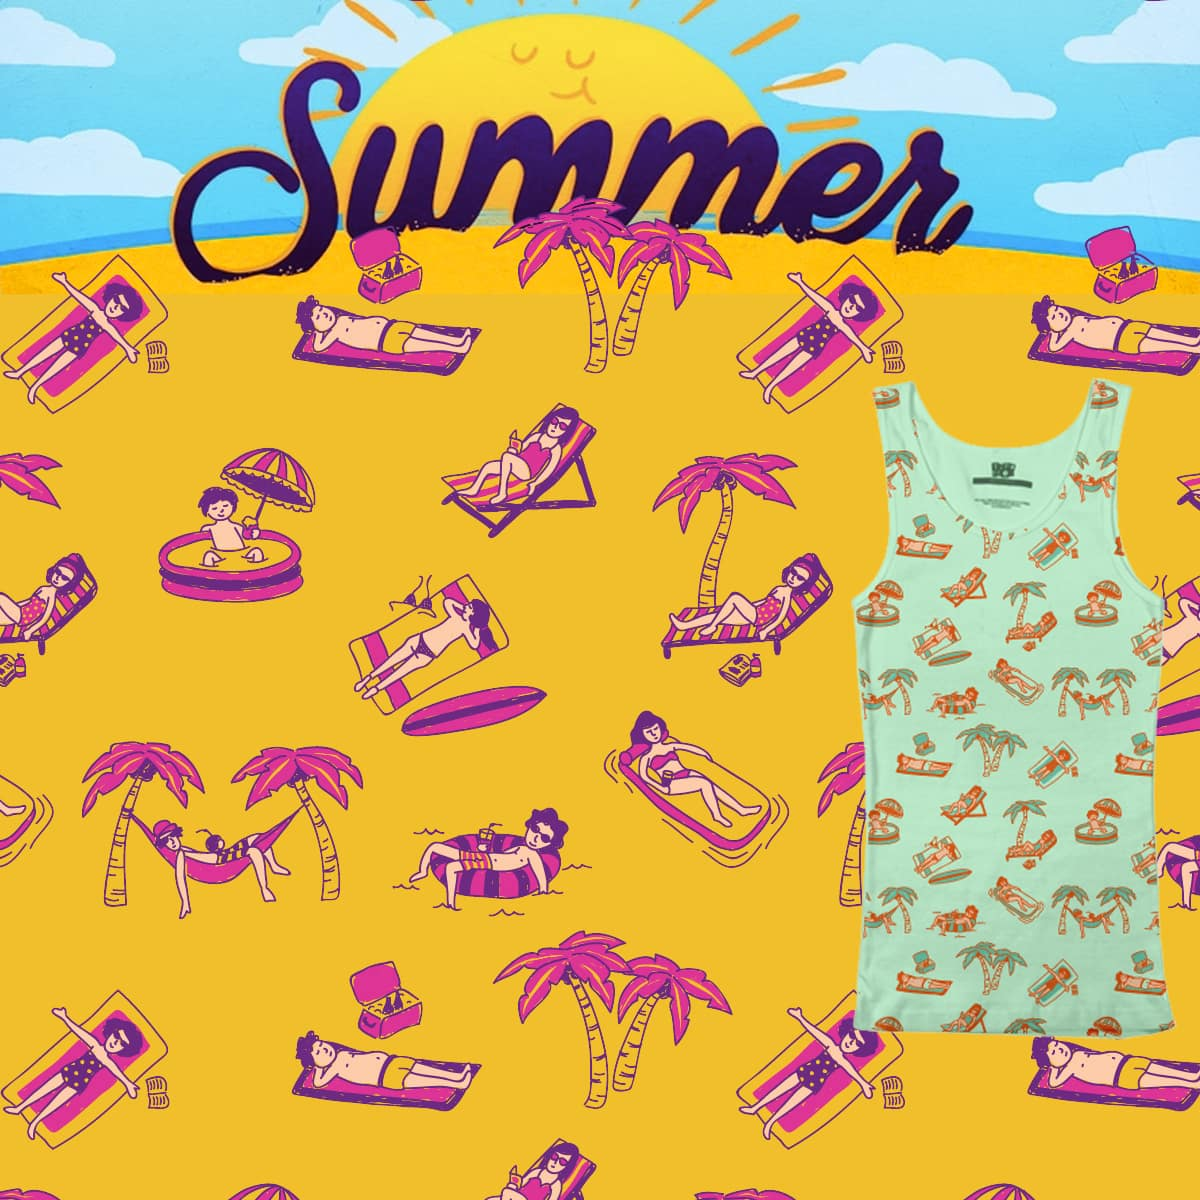 Summertime by Soffronia on Threadless